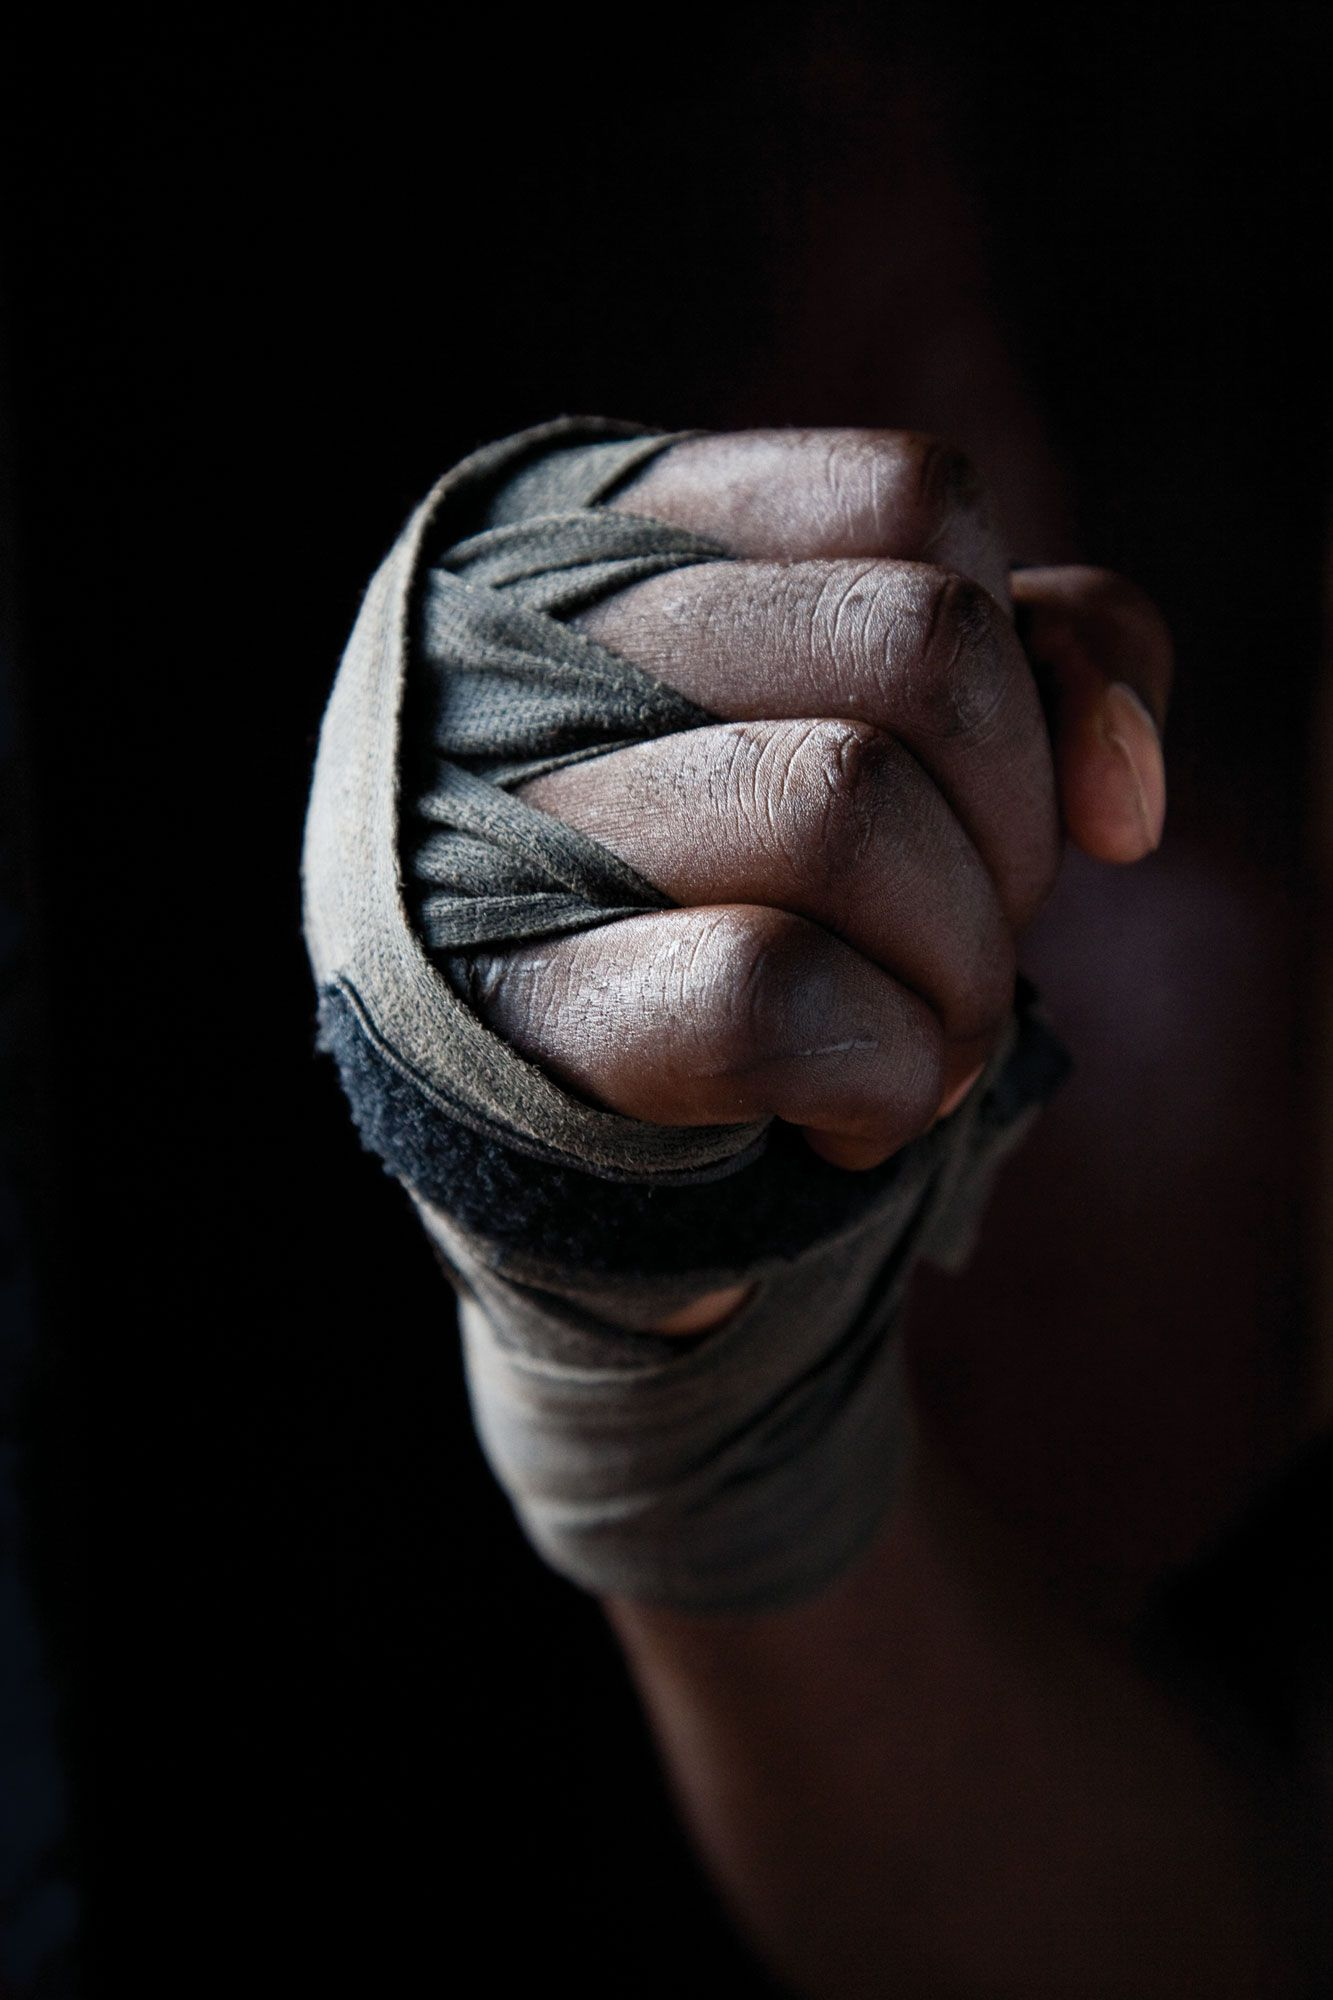 boxing photography tumblr google search gone ham